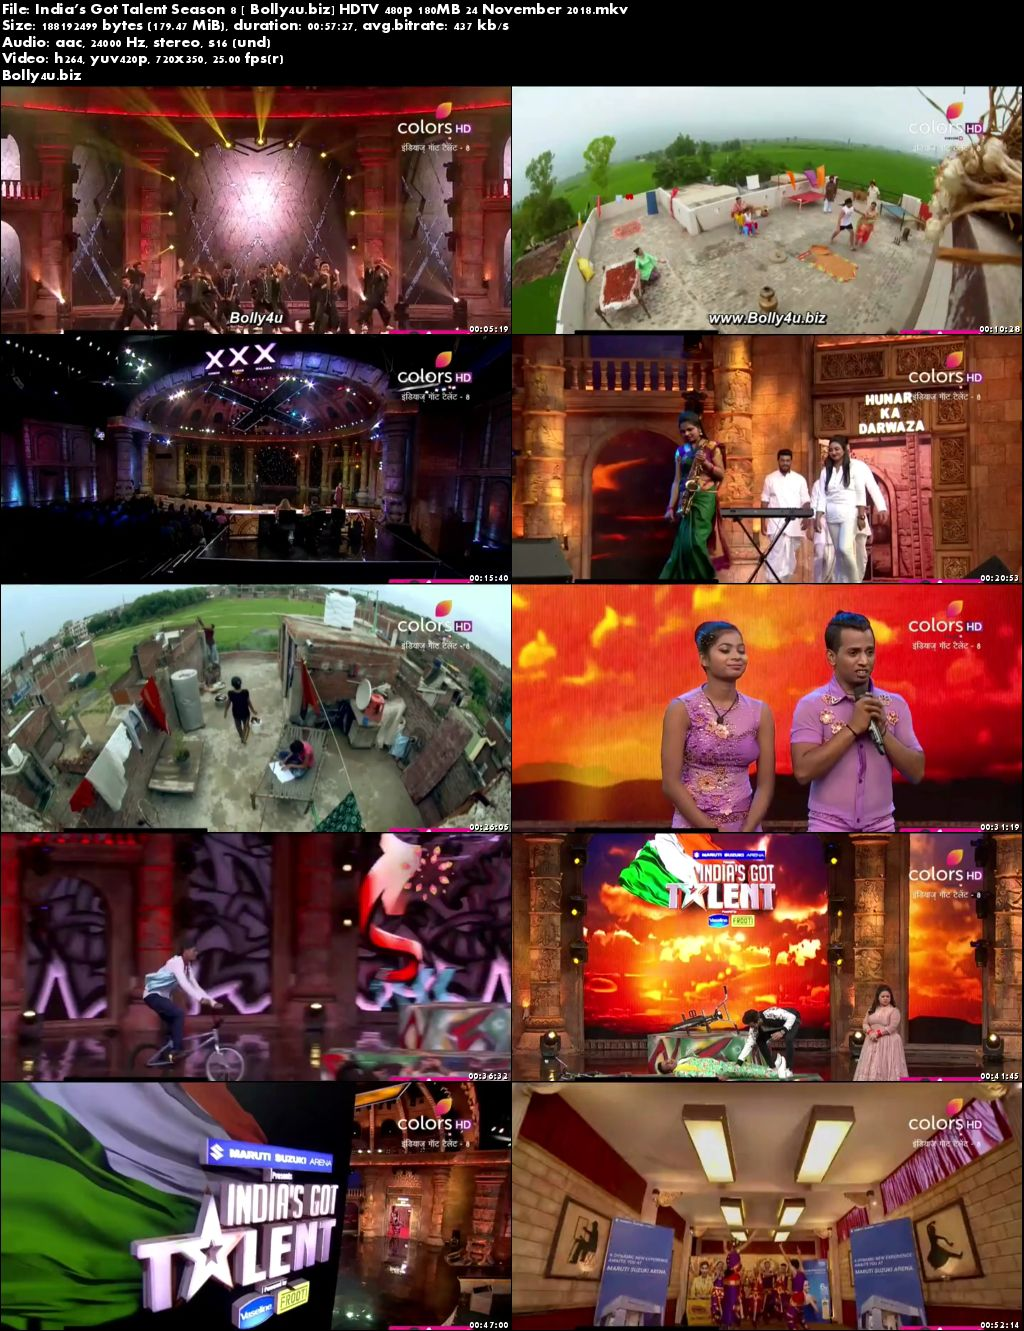 Indias Got Talent Season 8 HDTV 480p 180MB 24 November 2018 Download